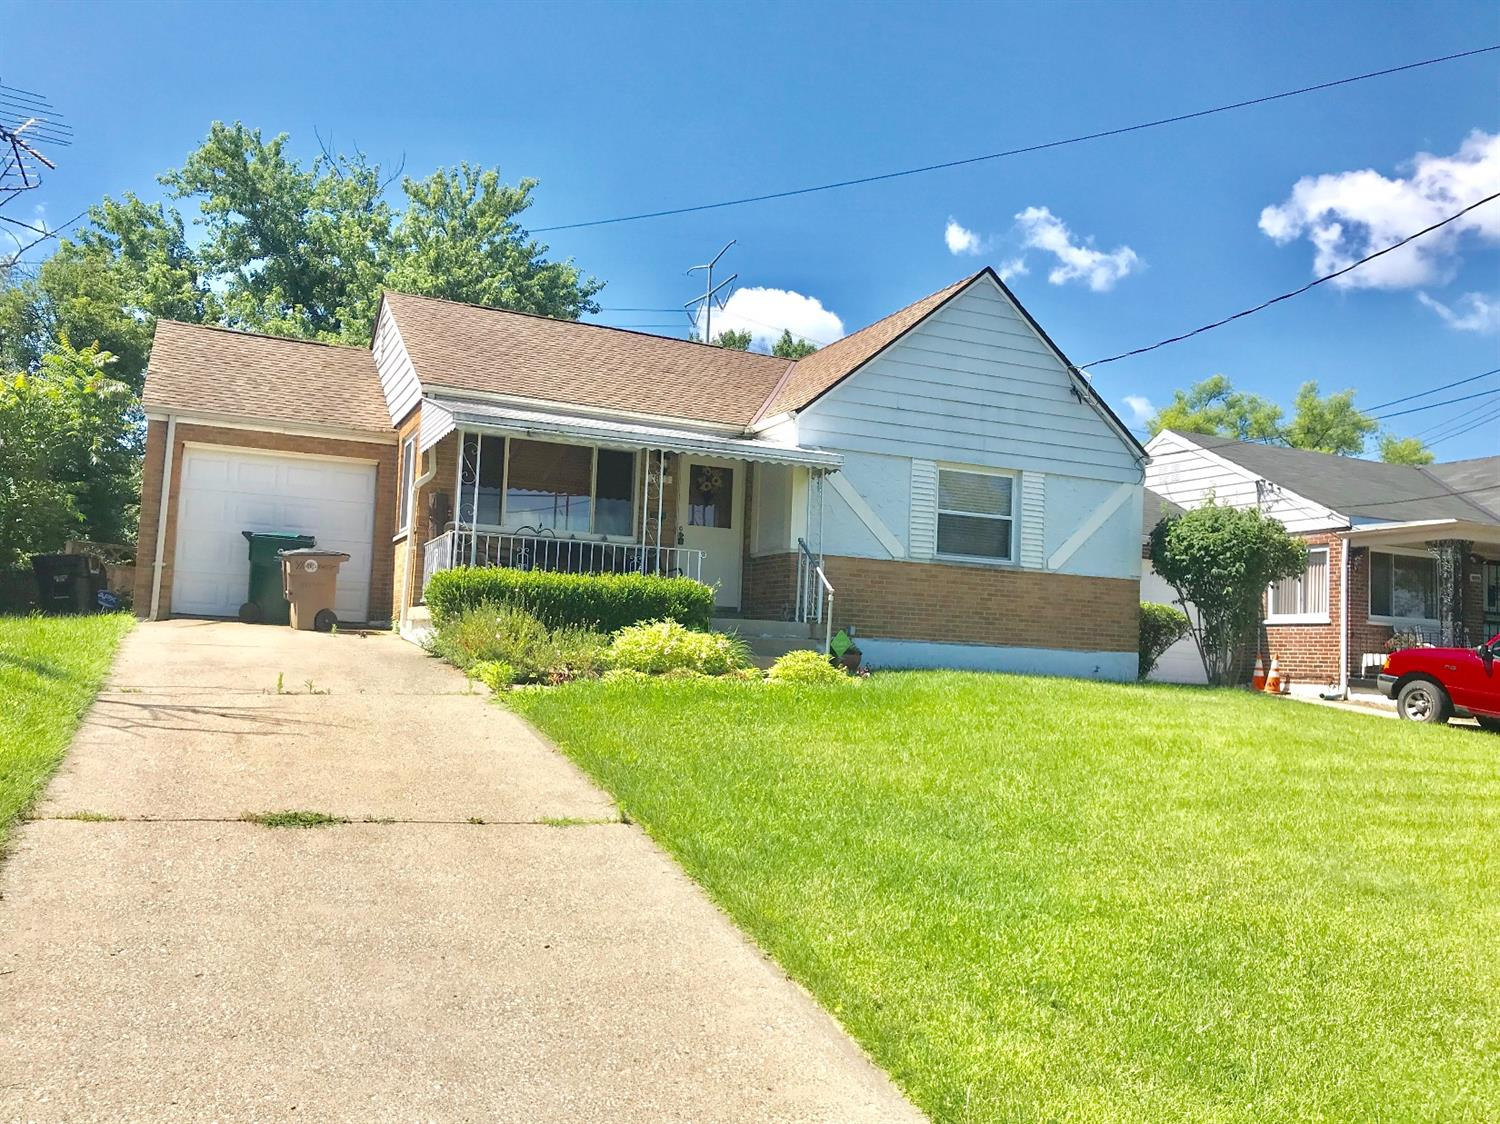 Photo 2 for 1813 Colmar Ln Roselawn, OH 45237